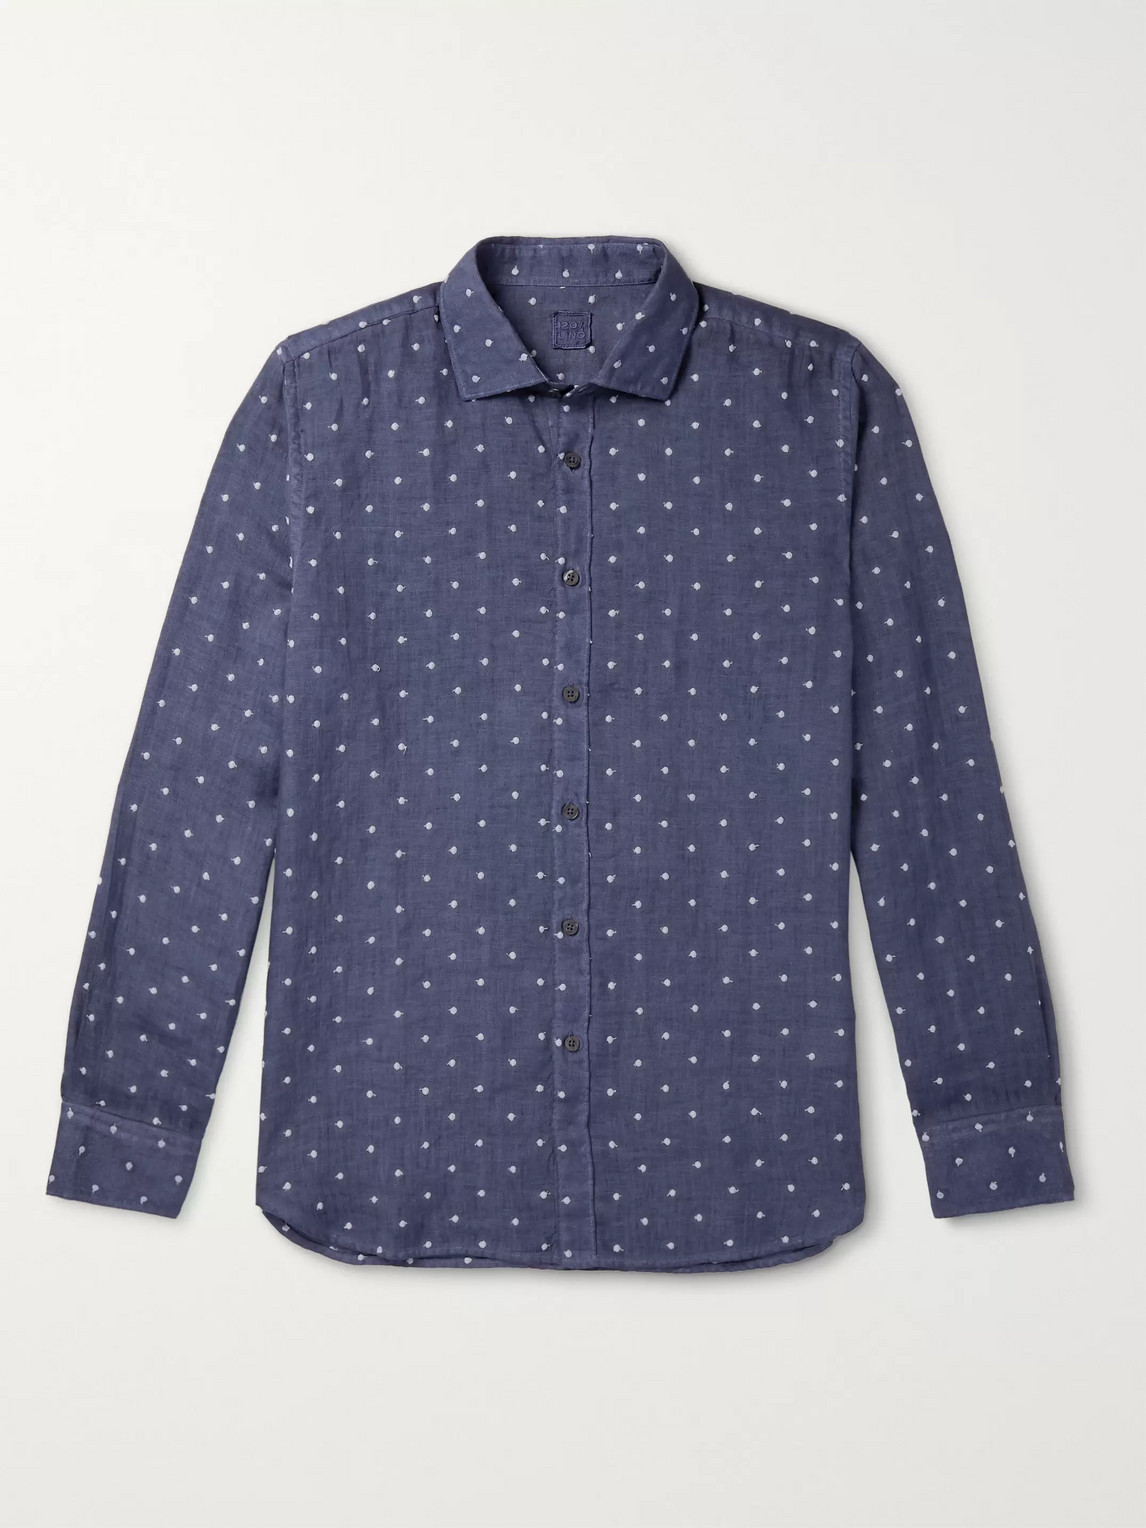 120% Polka-dot Embroidered Linen Shirt In Blue